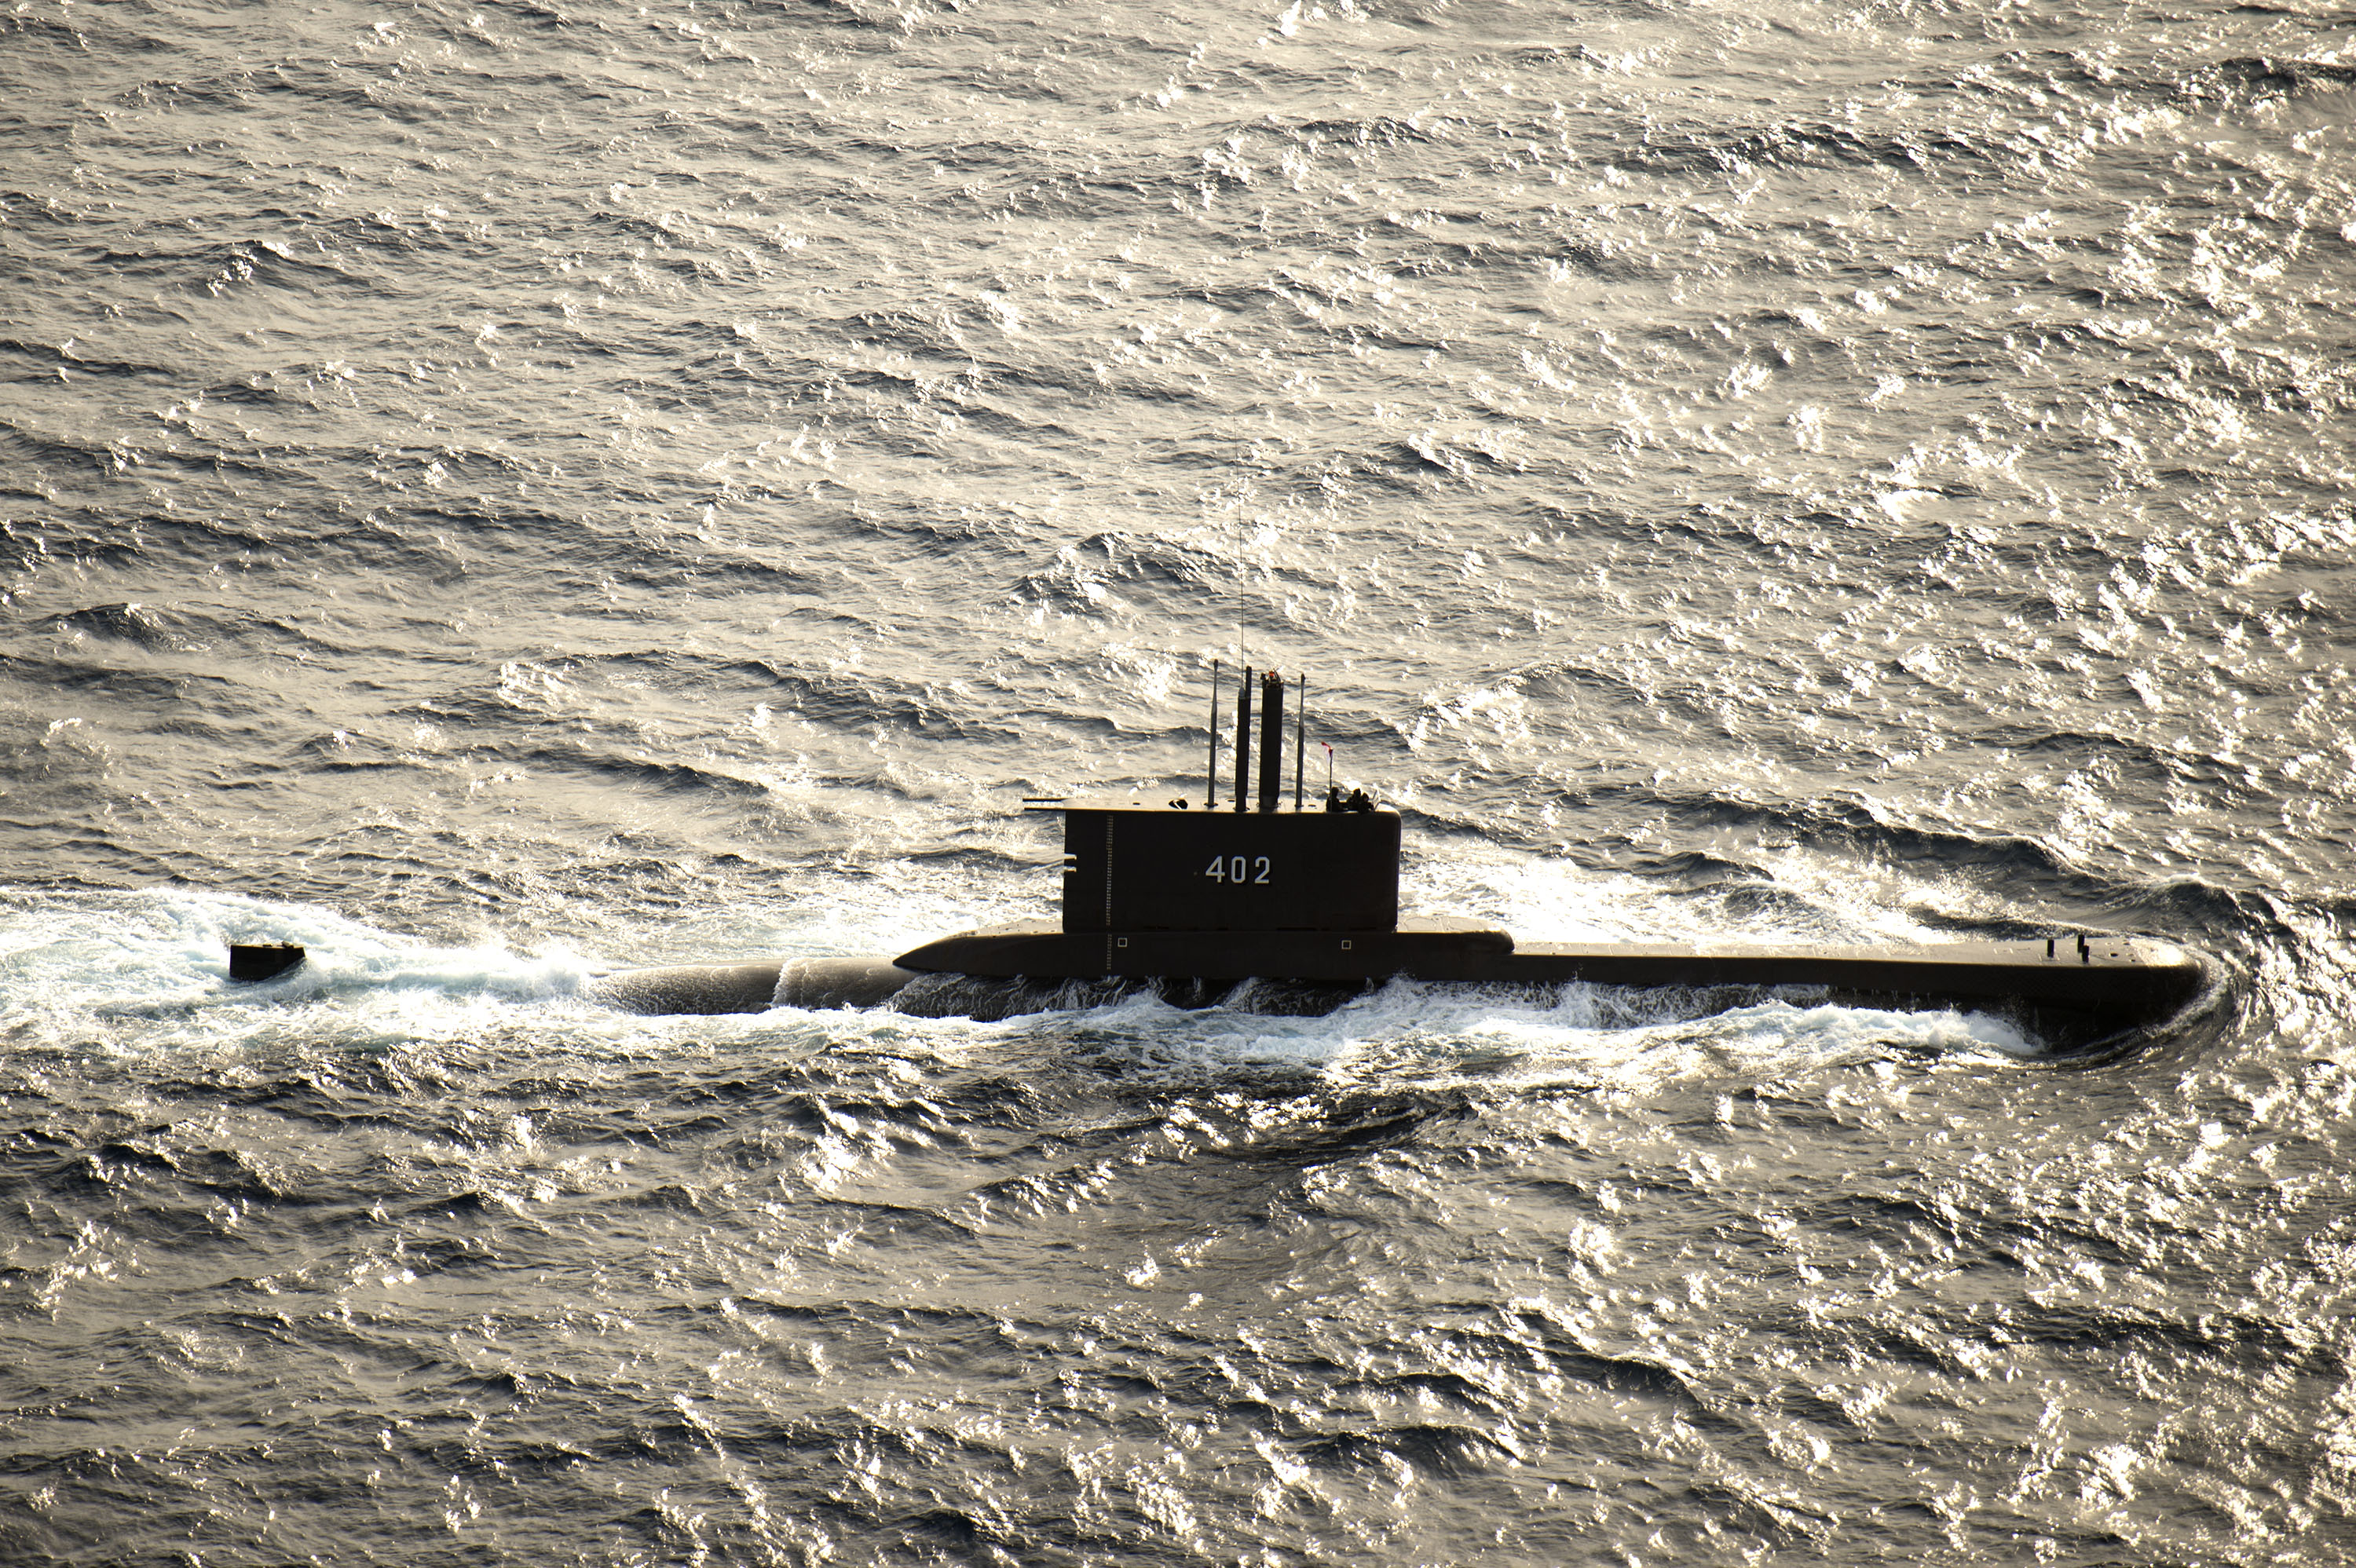 The Indonesian submarine KRI Nanggala, pictured in 2015, went missing near the resort Island of Bali on April 21, 2021. (U.S. Navy photo by Mass Communication Specialist 3rd Class Alonzo M. Archer)